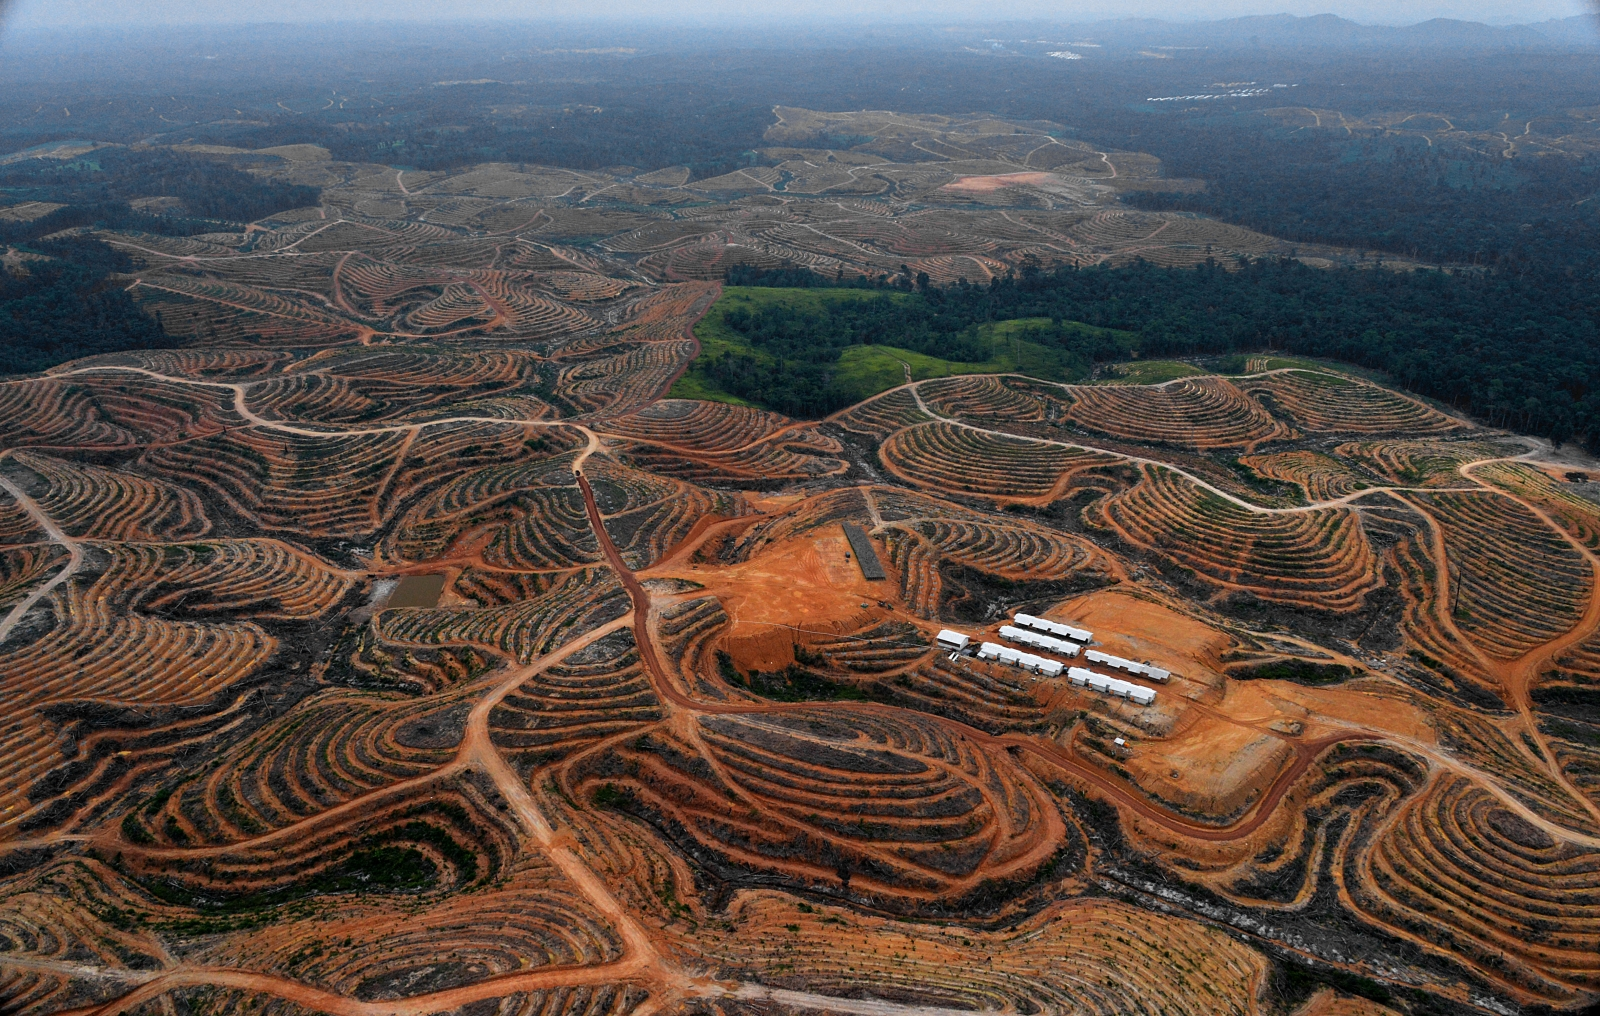 borneo deforestation palm oil